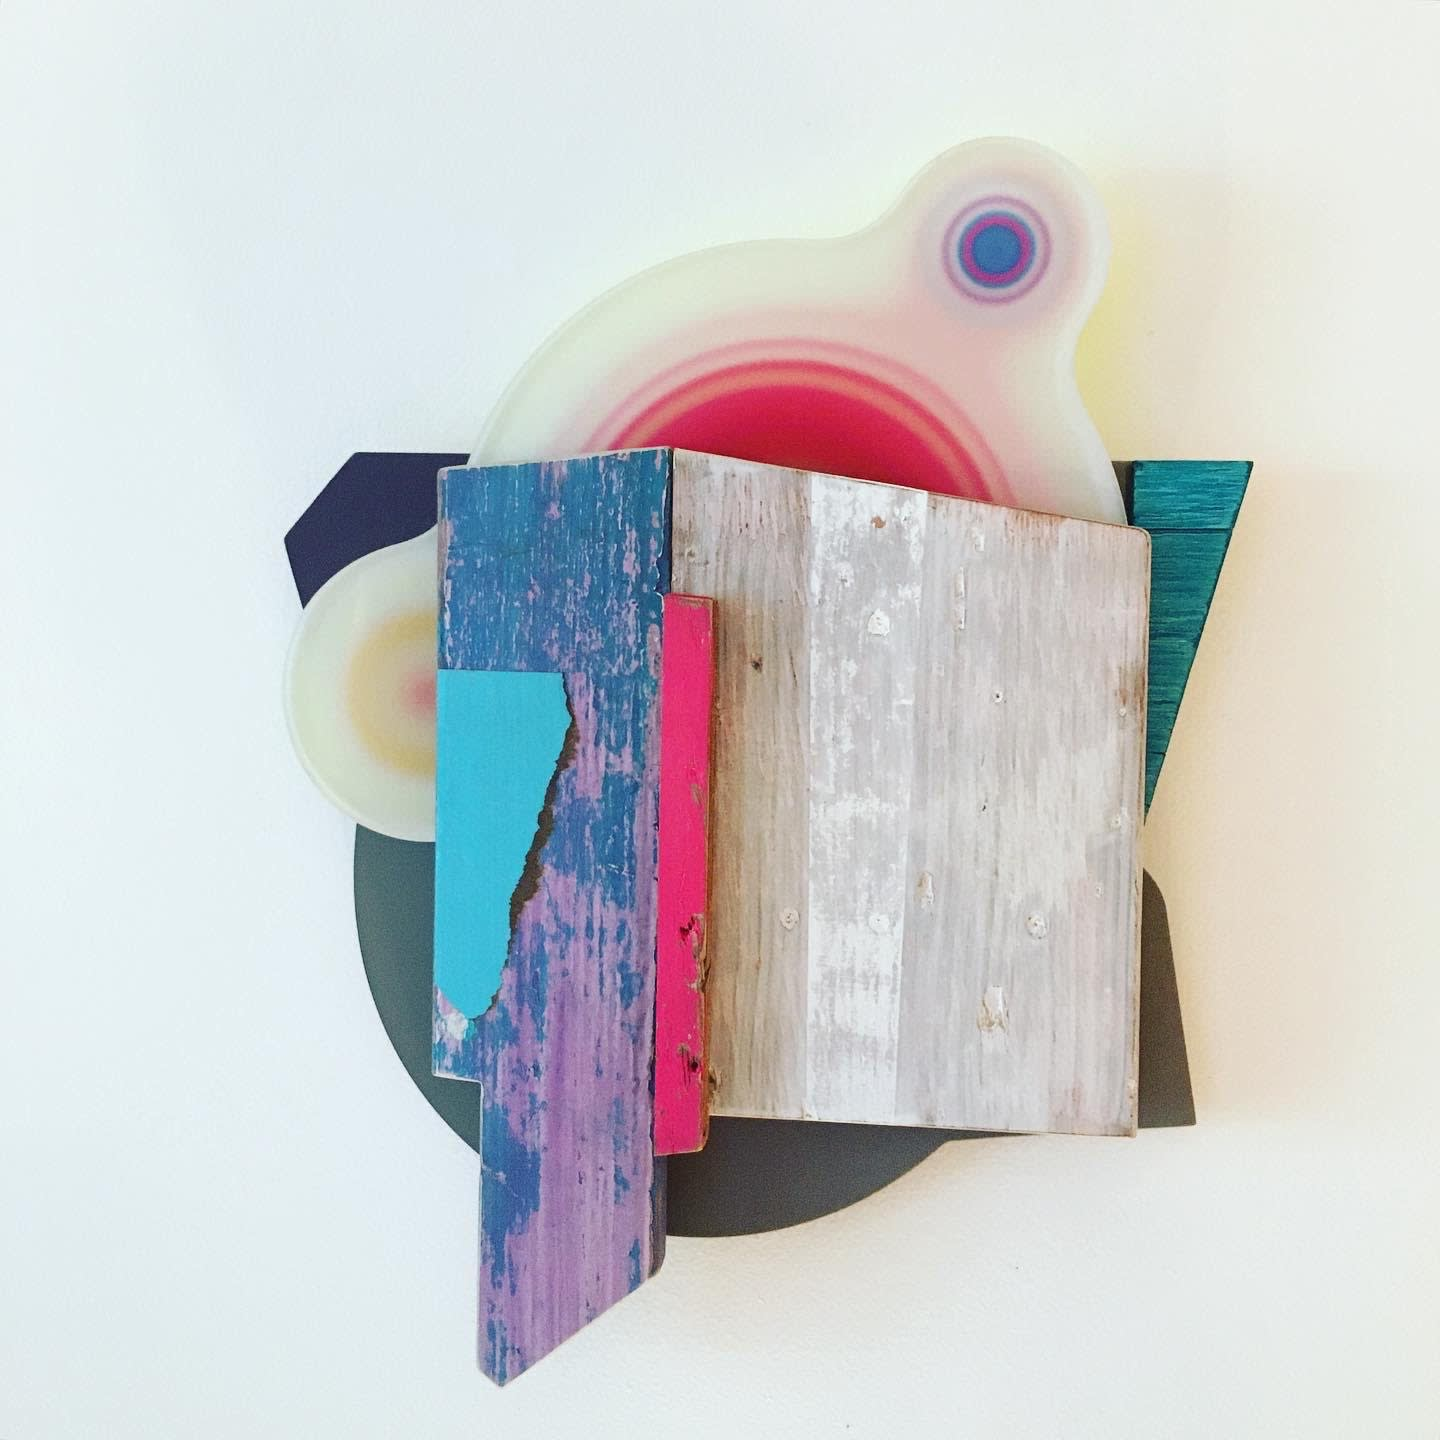 Andrés Ferrandis Islas, 2020 Wood, polycarbonate, found object, silkscreen cardboard, oil and acrylic painting 22 x 16 x 3.5